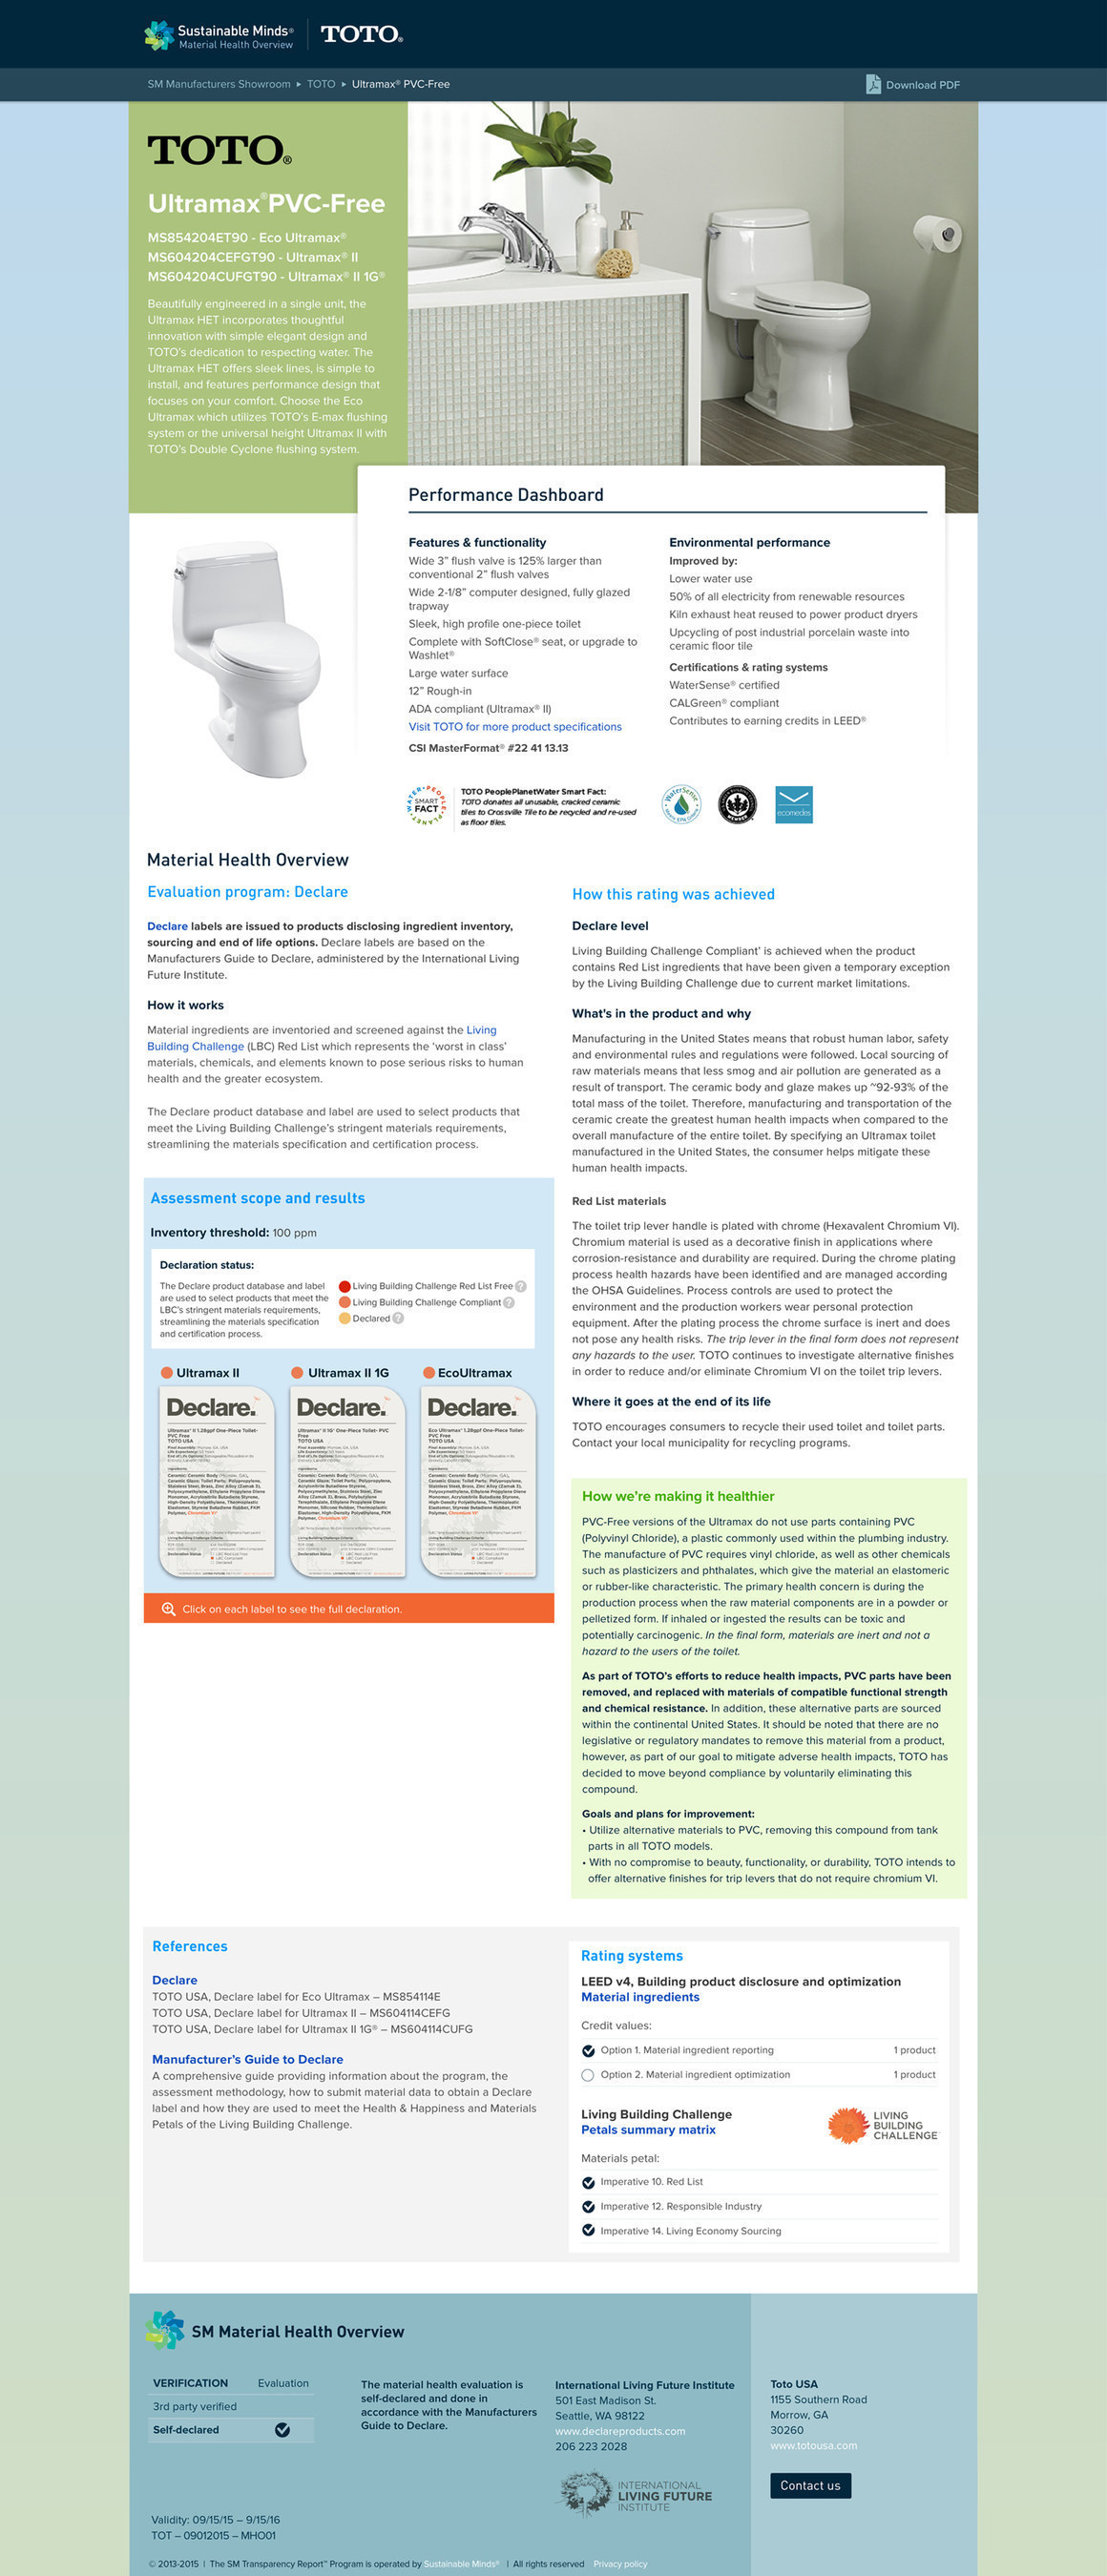 Transparency is the cornerstone of all the TOTO's initiatives and key to providing its customers with informed choices about its products and a profound understanding of the ethic upon which the company operates. Its new PVC-free Material Health Overview (MHO) is designed to inform safer purchase decisions. It makes material health evaluation information meaningful by describing what TOTO is doing to improve the material health of its products. Available as a standalone report, TOTO's new Sustainable Minds MHO delivers functional and material health attributes for its PVC-free high-efficiency toilets in one place.